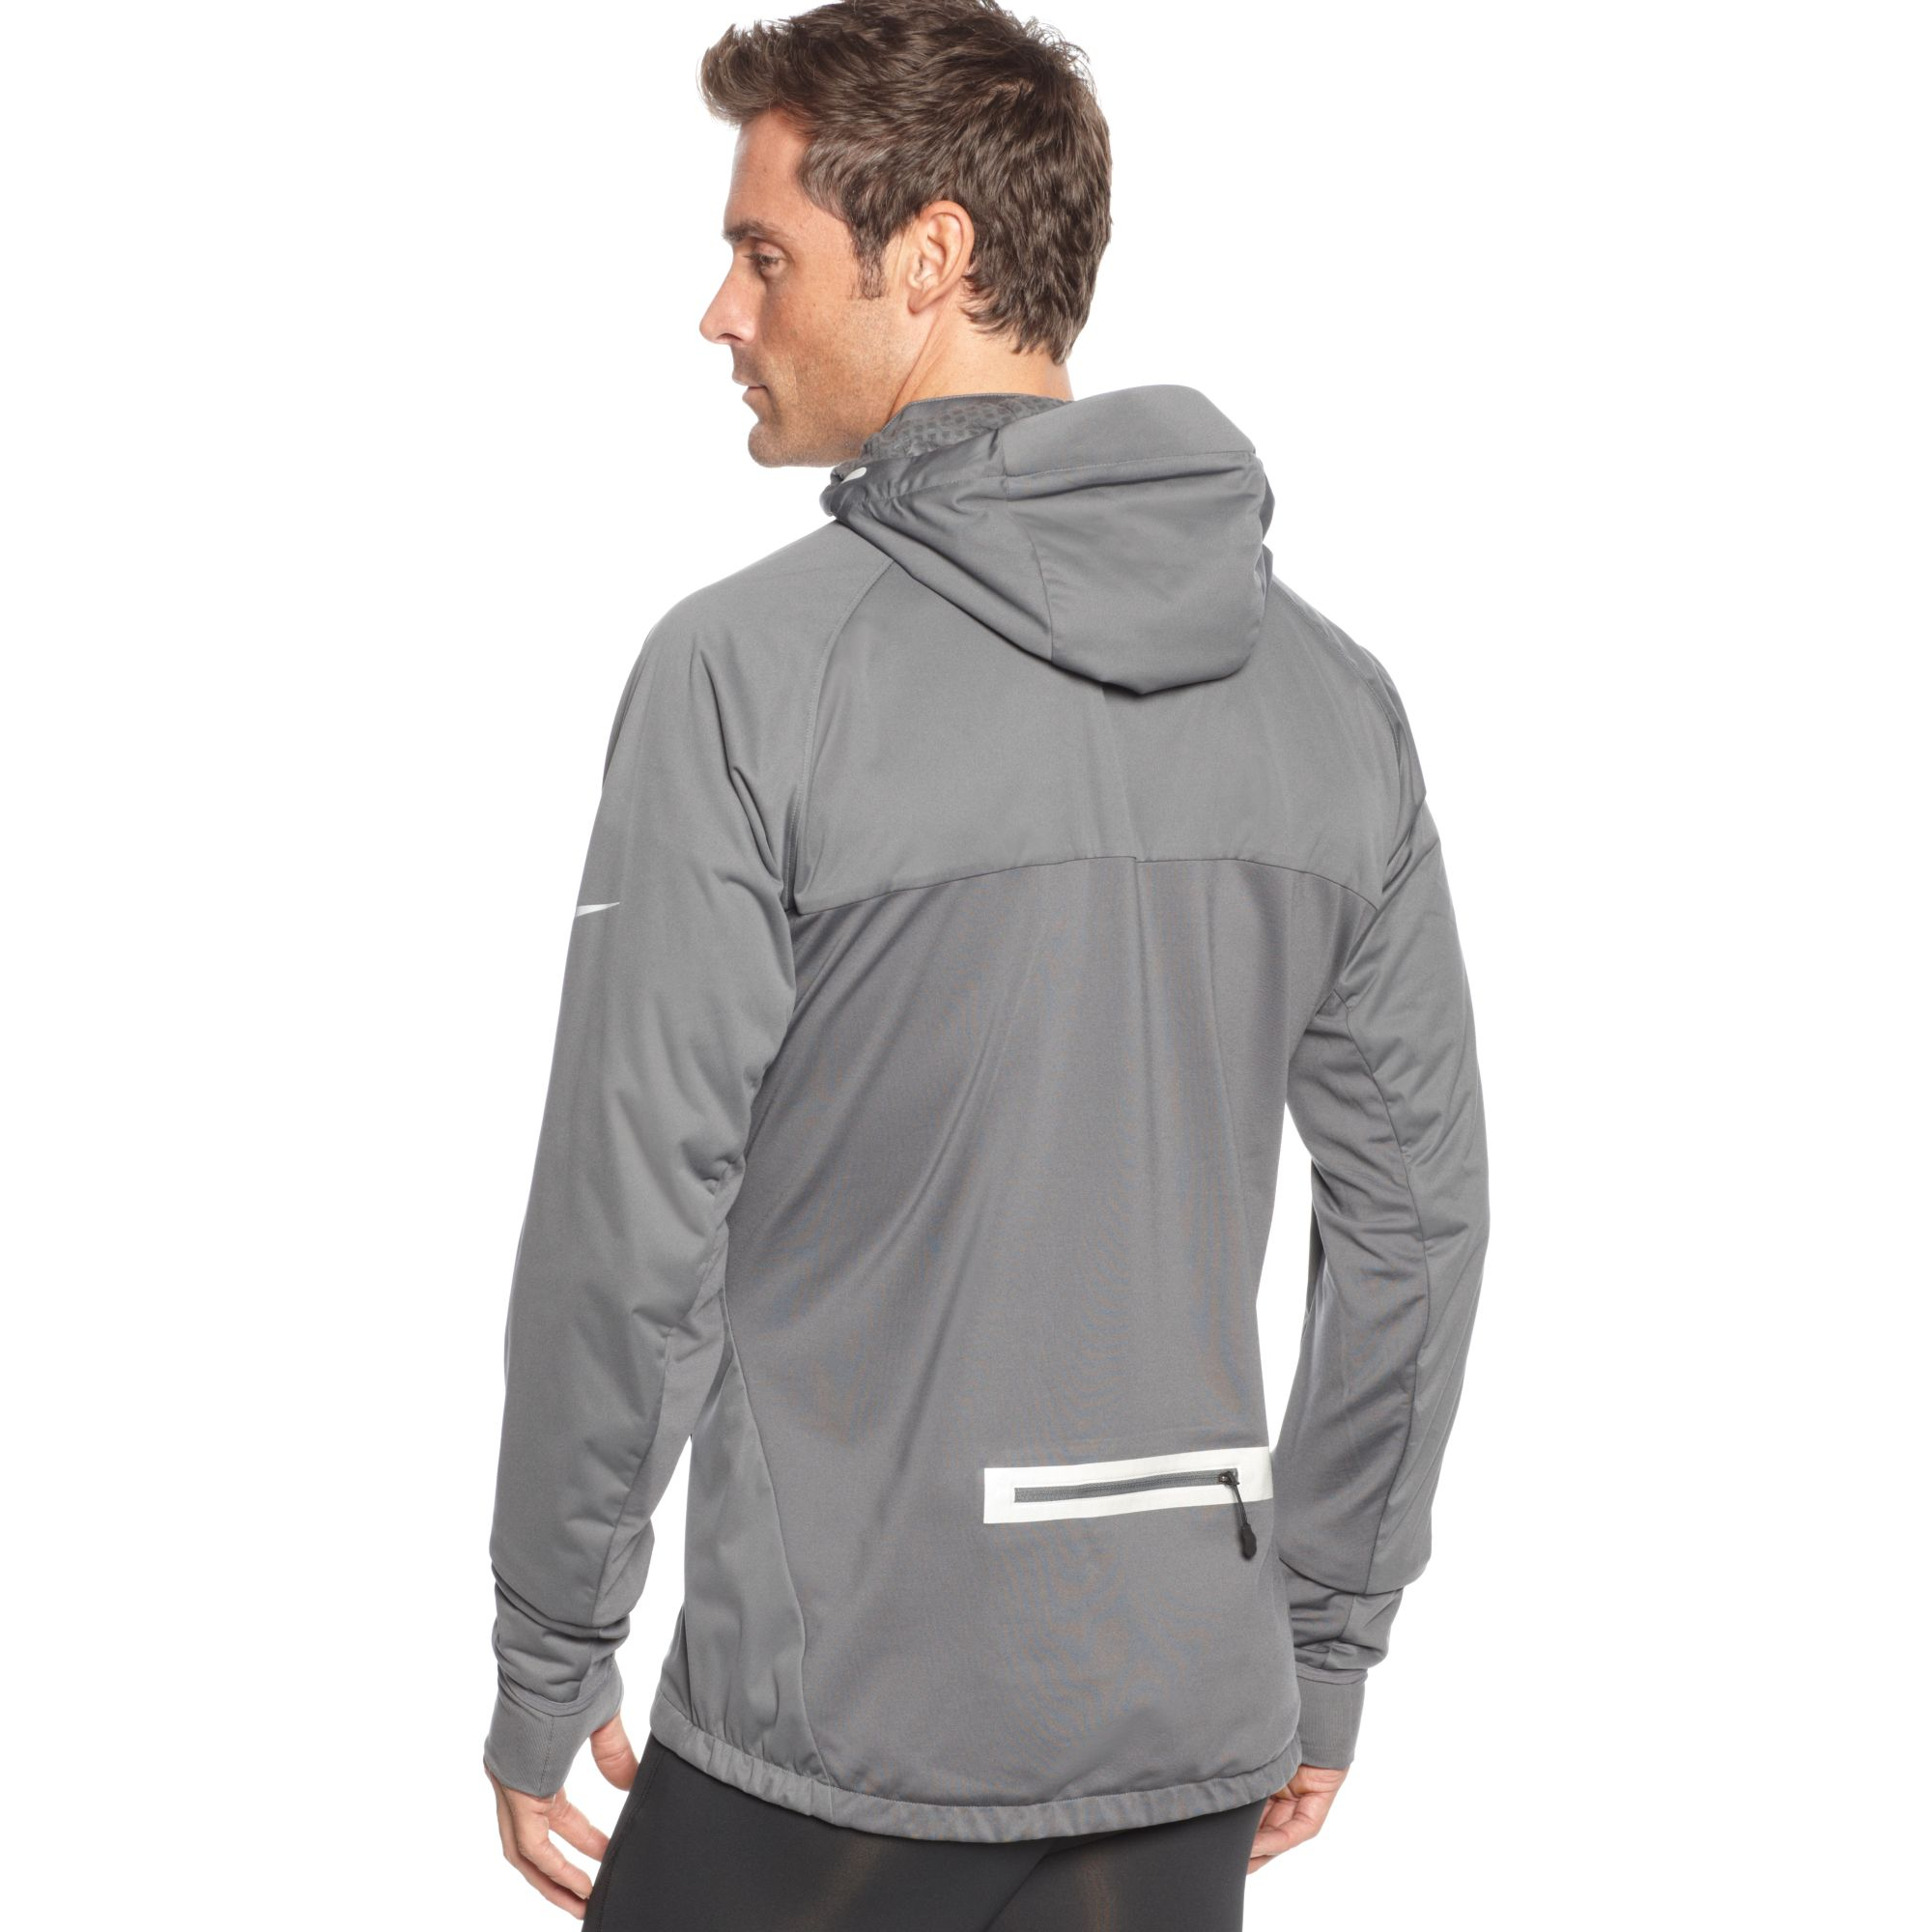 Lyst - Nike Element Shield Max Hooded Jacket in Gray for Men c6e0fad69c22